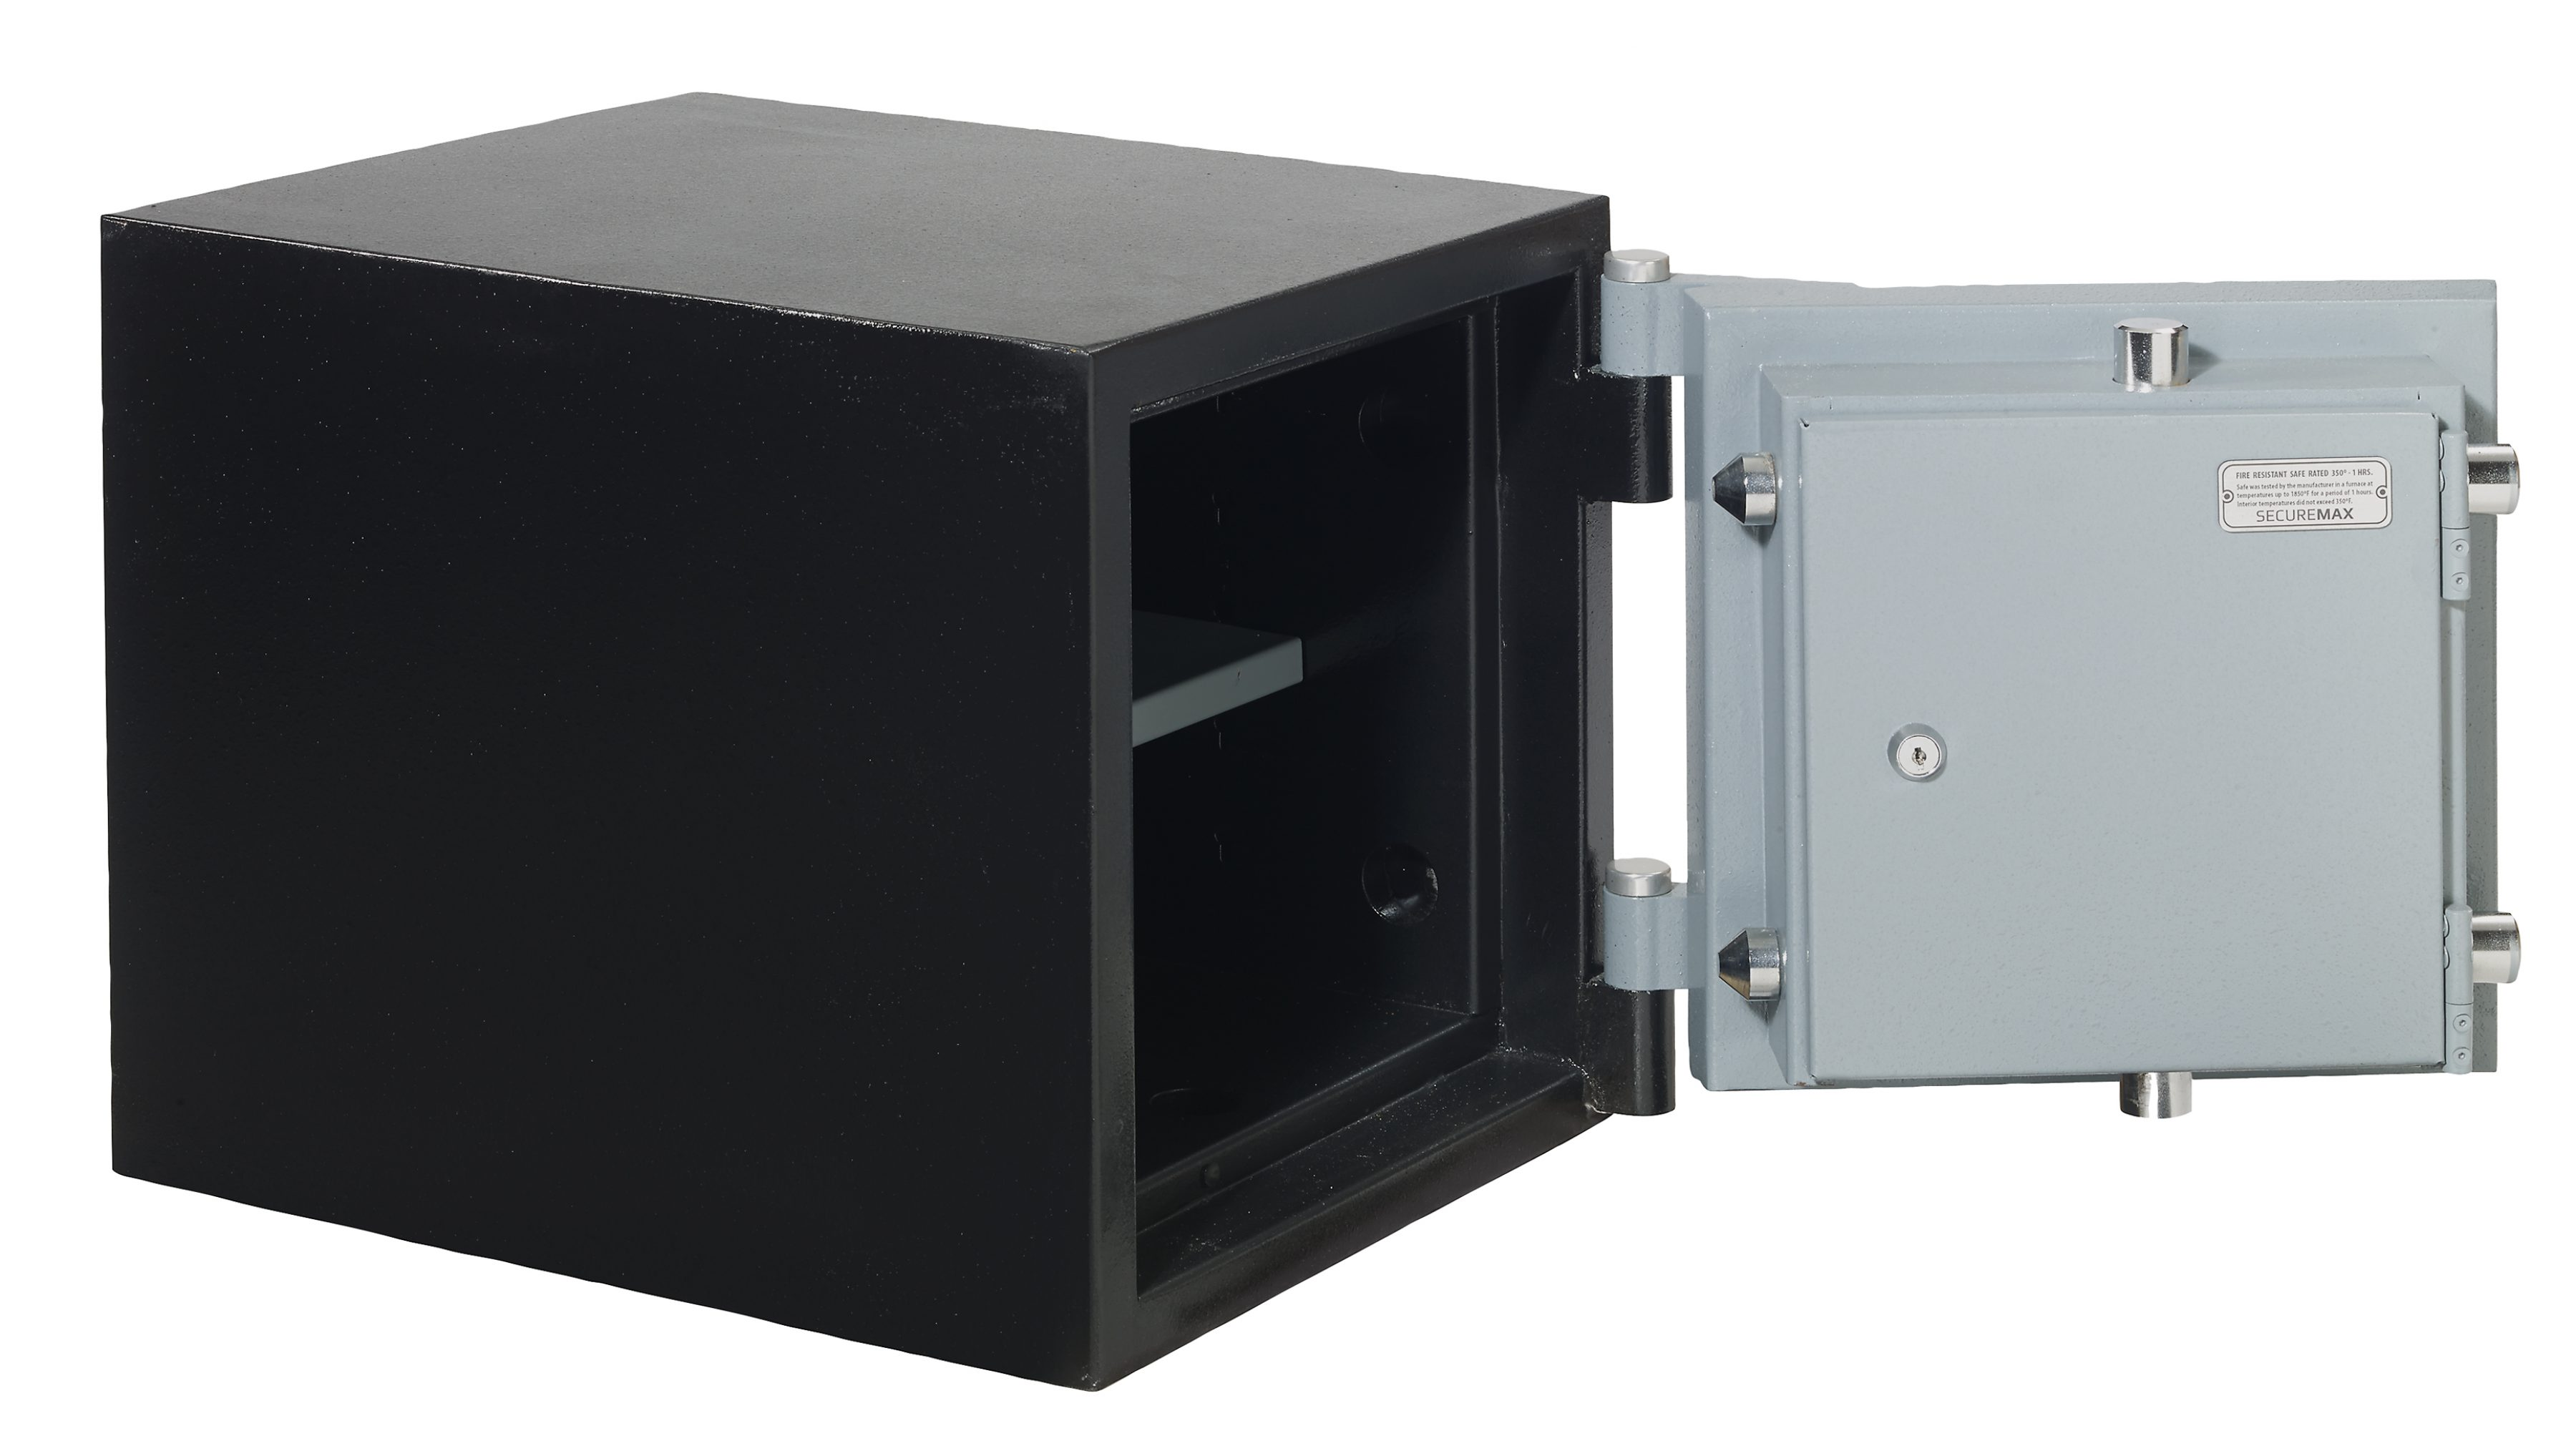 https://www.accusafes.com/wp-content/uploads/2018/10/LW-1212-SIDE-3600x2007.jpg